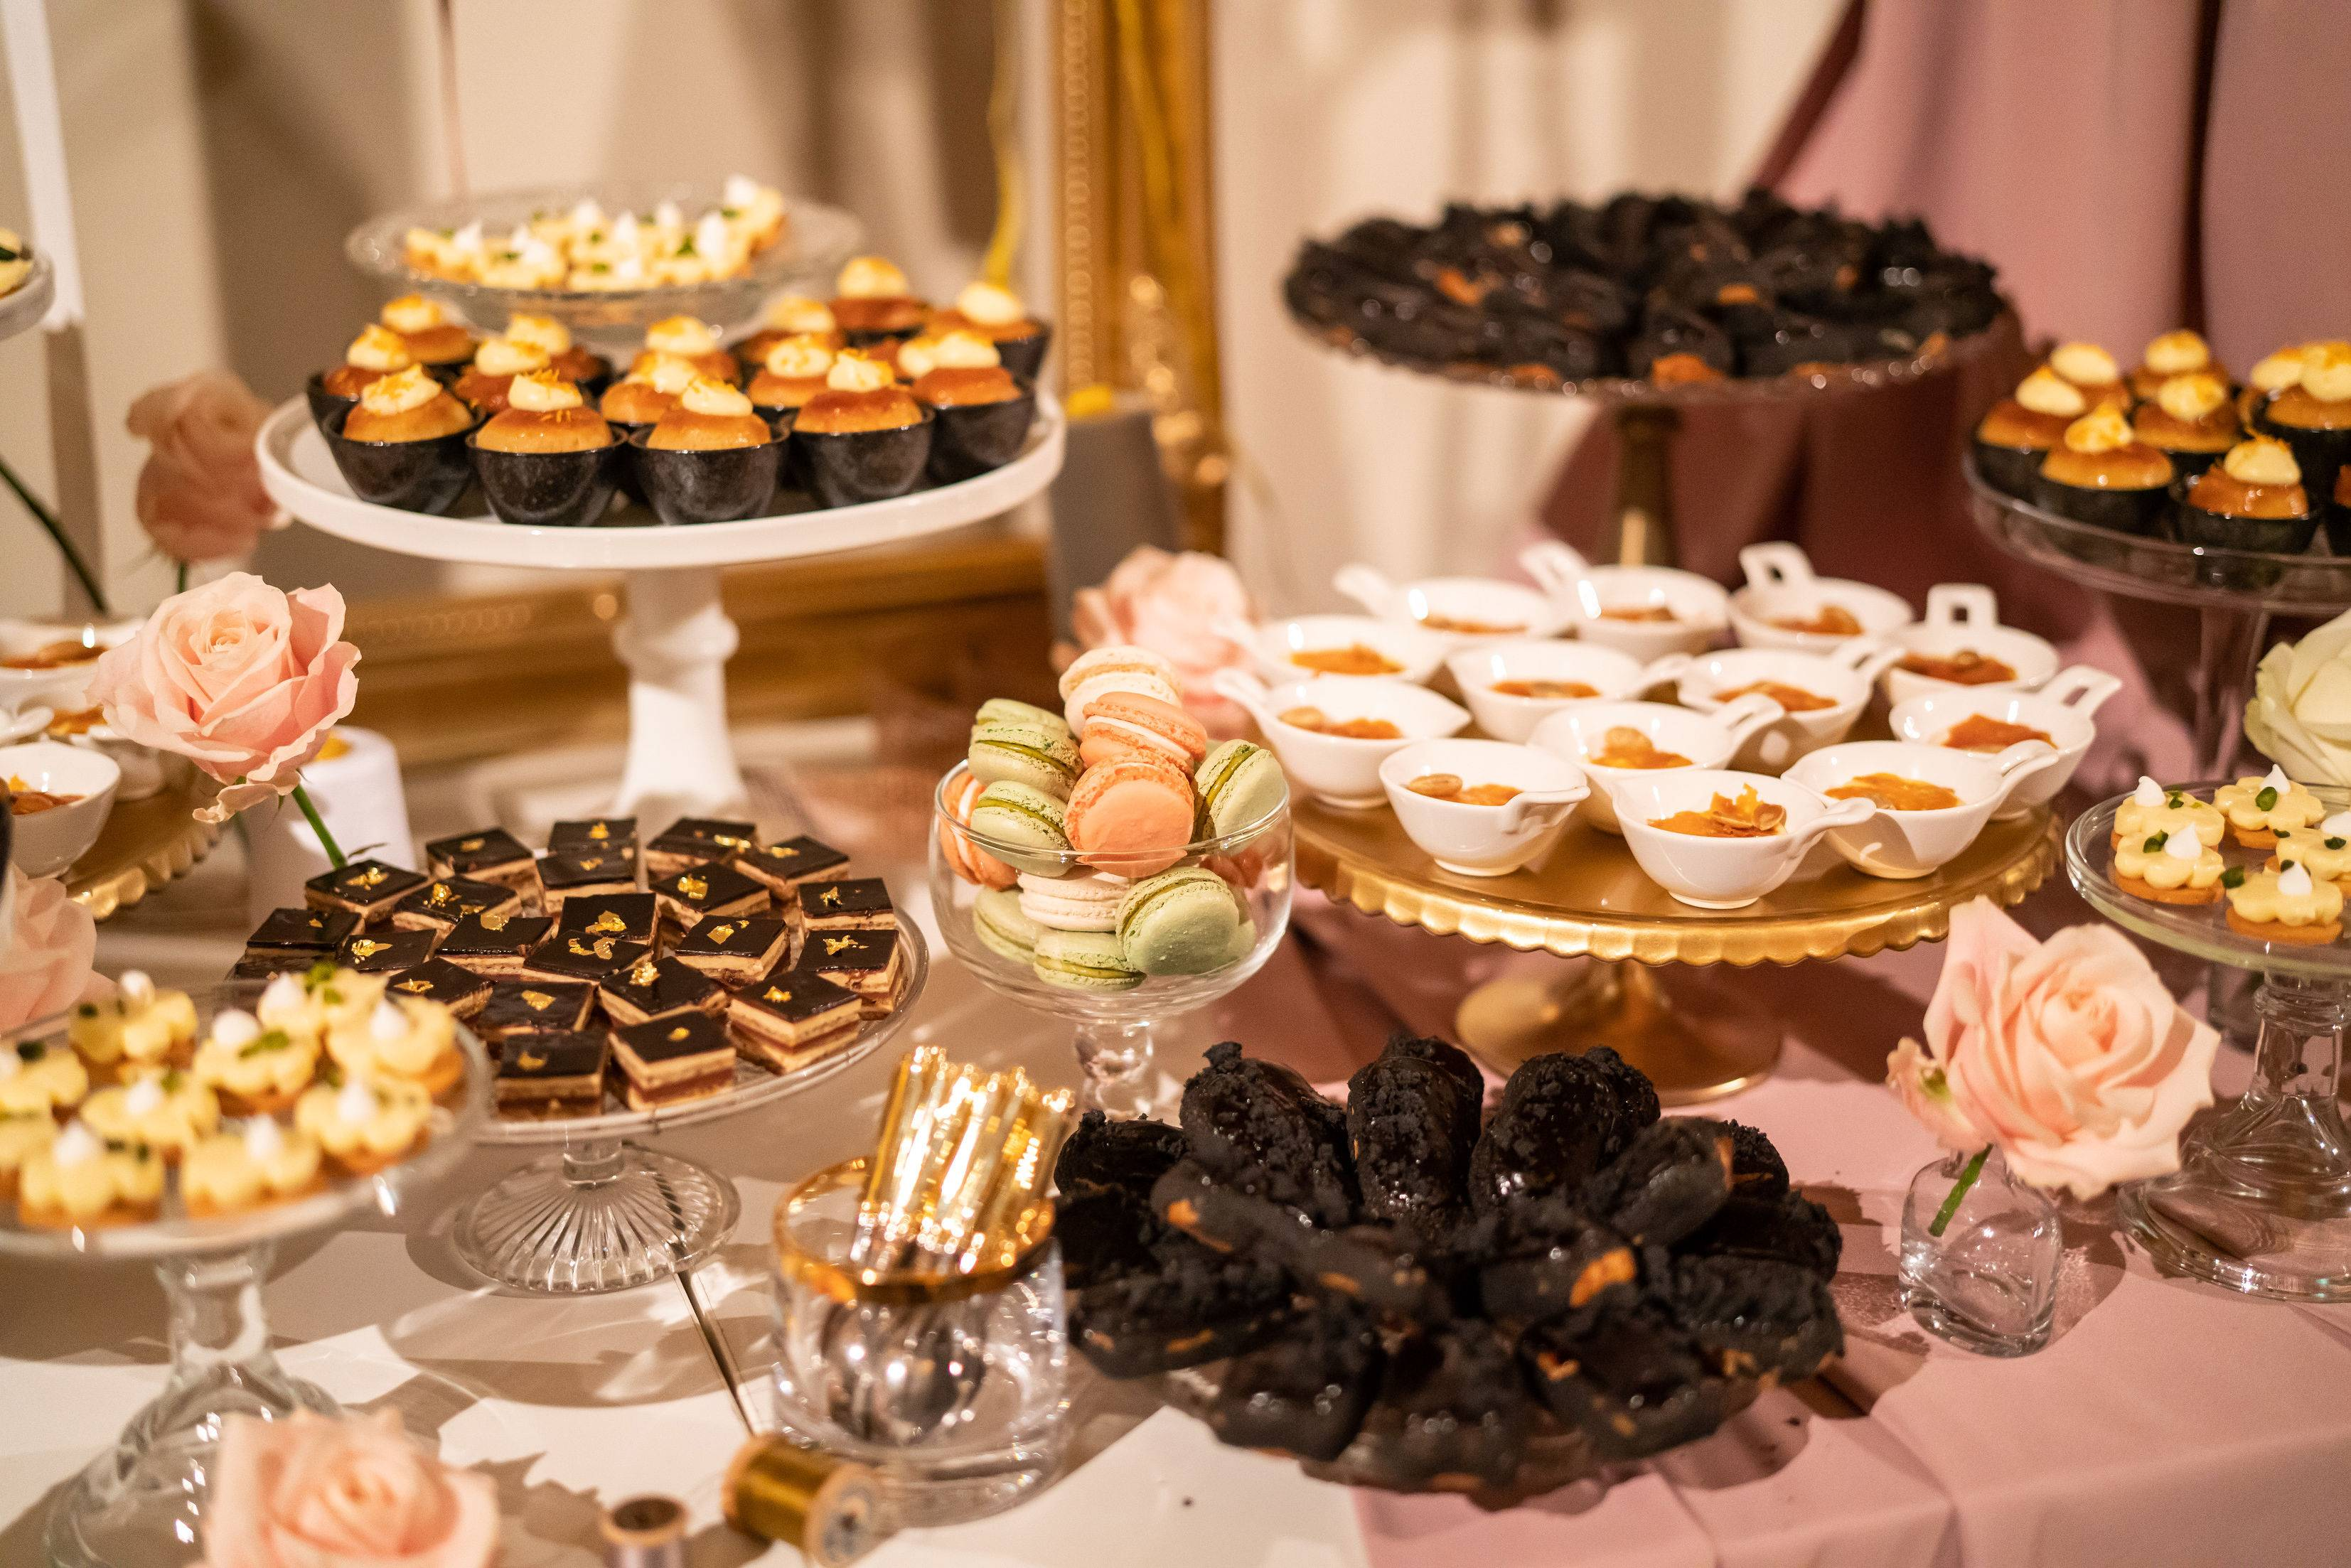 Pudding stall, dessert station, luxury event planners, mirrored bar, parisian pudding stall, dessert station at the V&A London